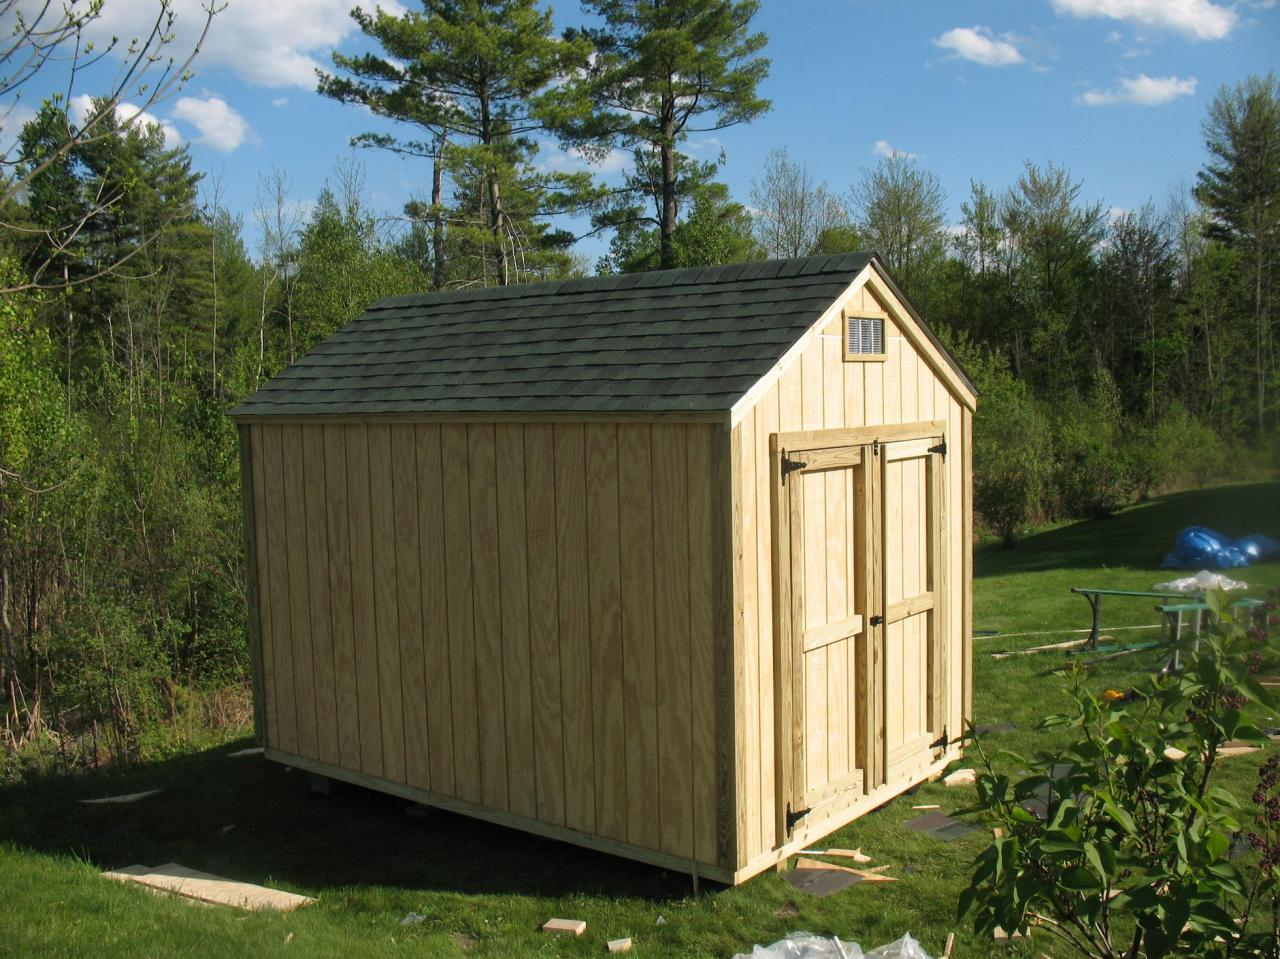 Amish Garages In New York : Amish sheds plattsburgh new york tuff shed cabin reviews